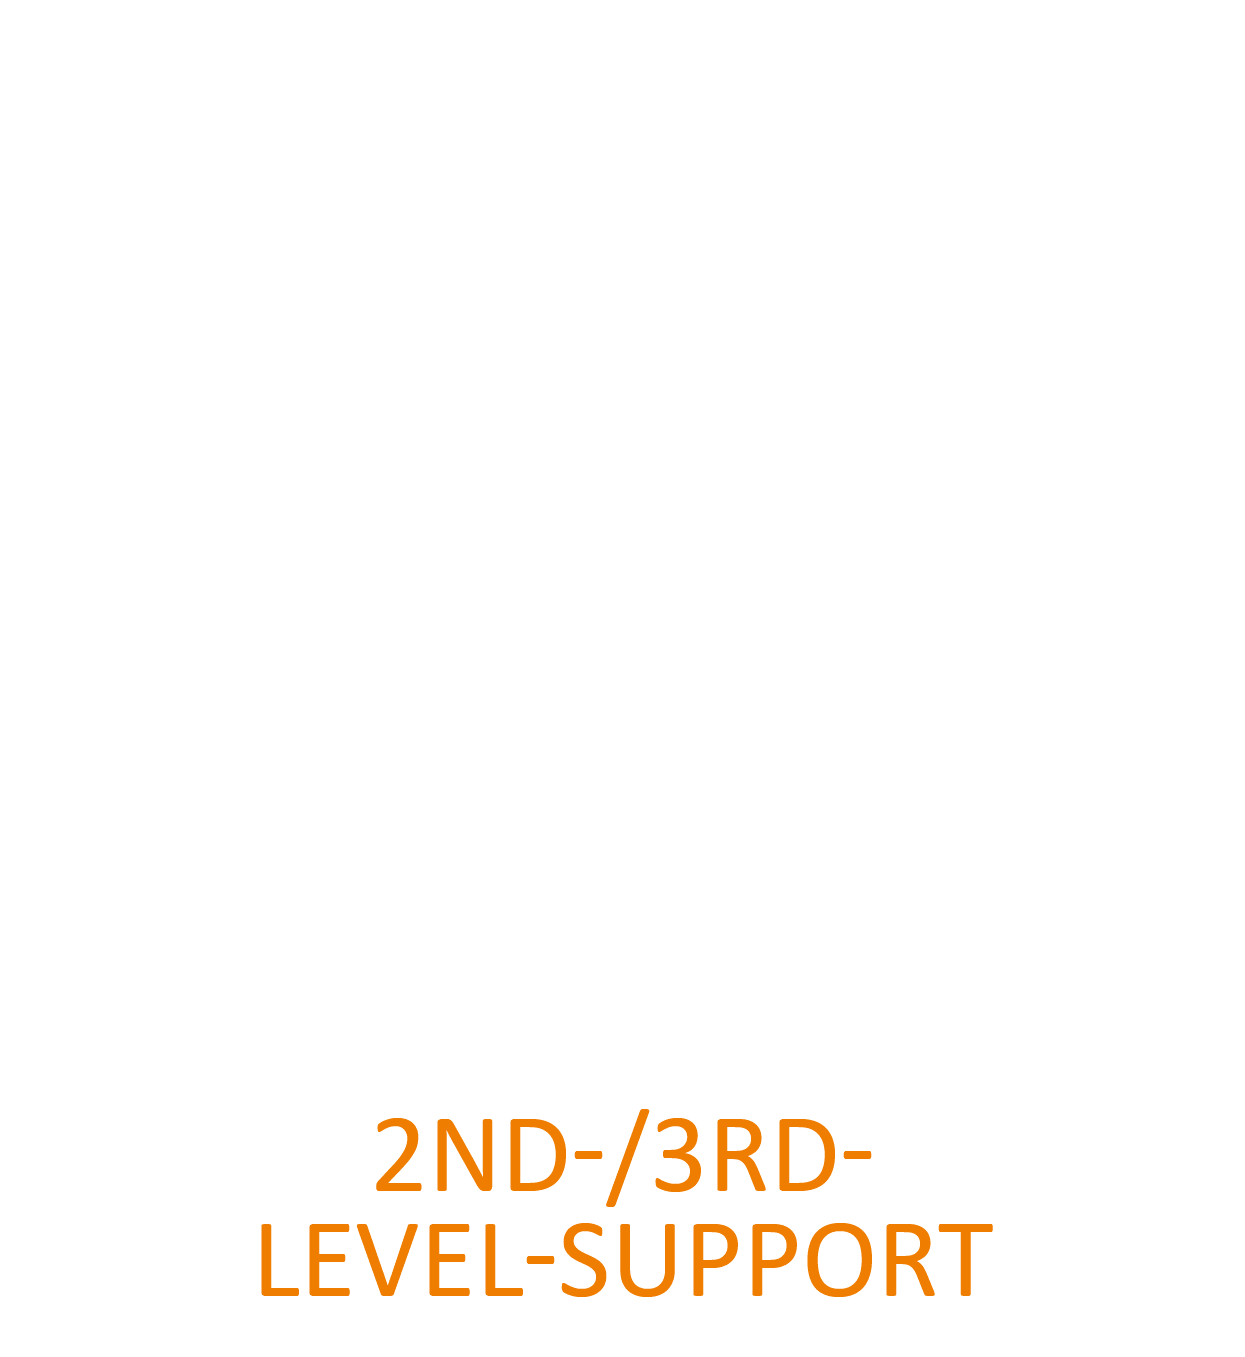 2nd-/3rd-Level-Support